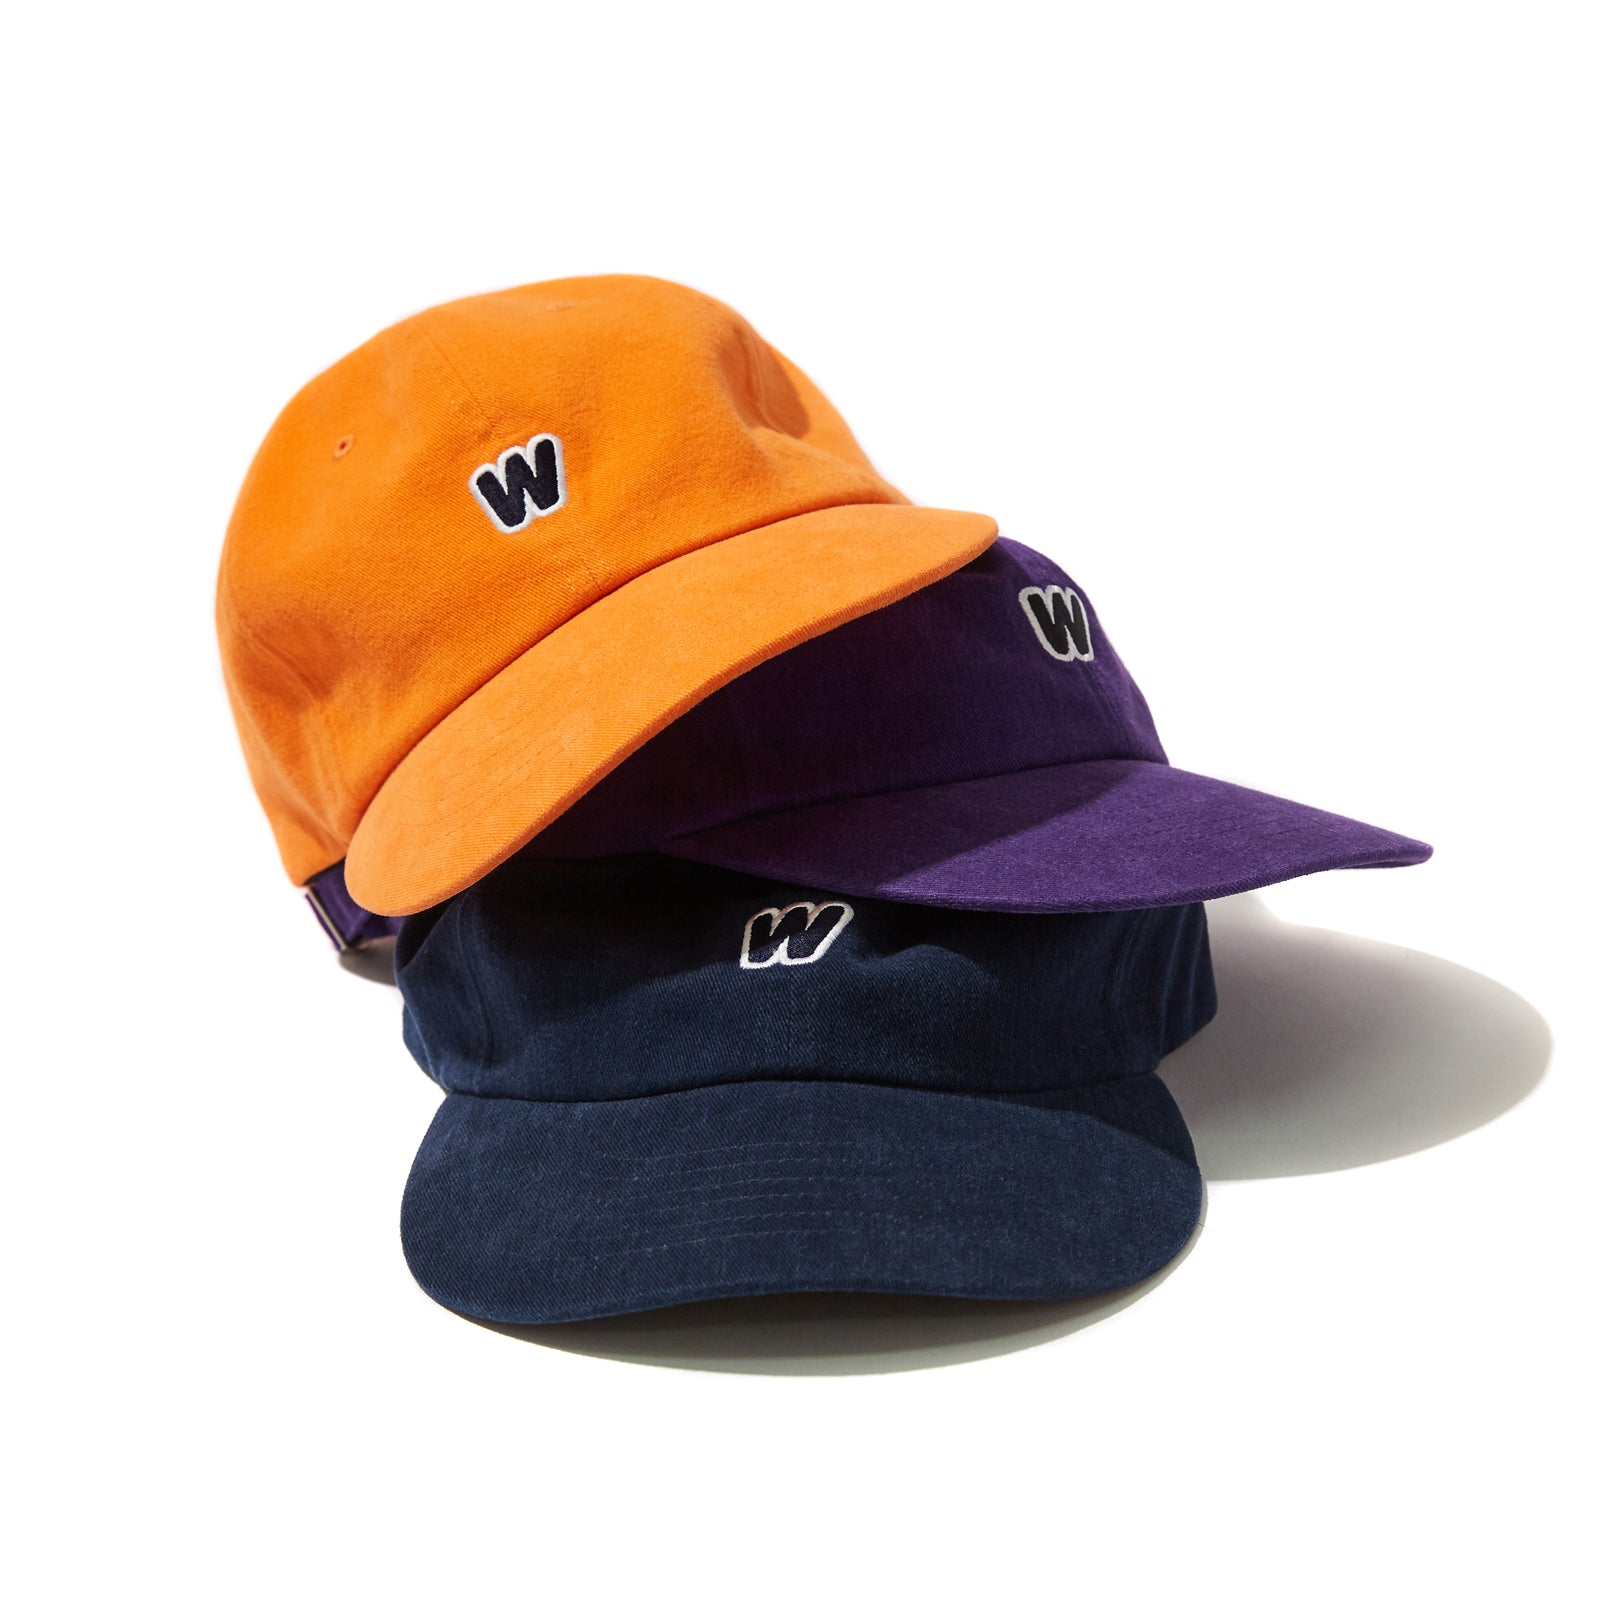 W LOGO CAP (ORANGE)